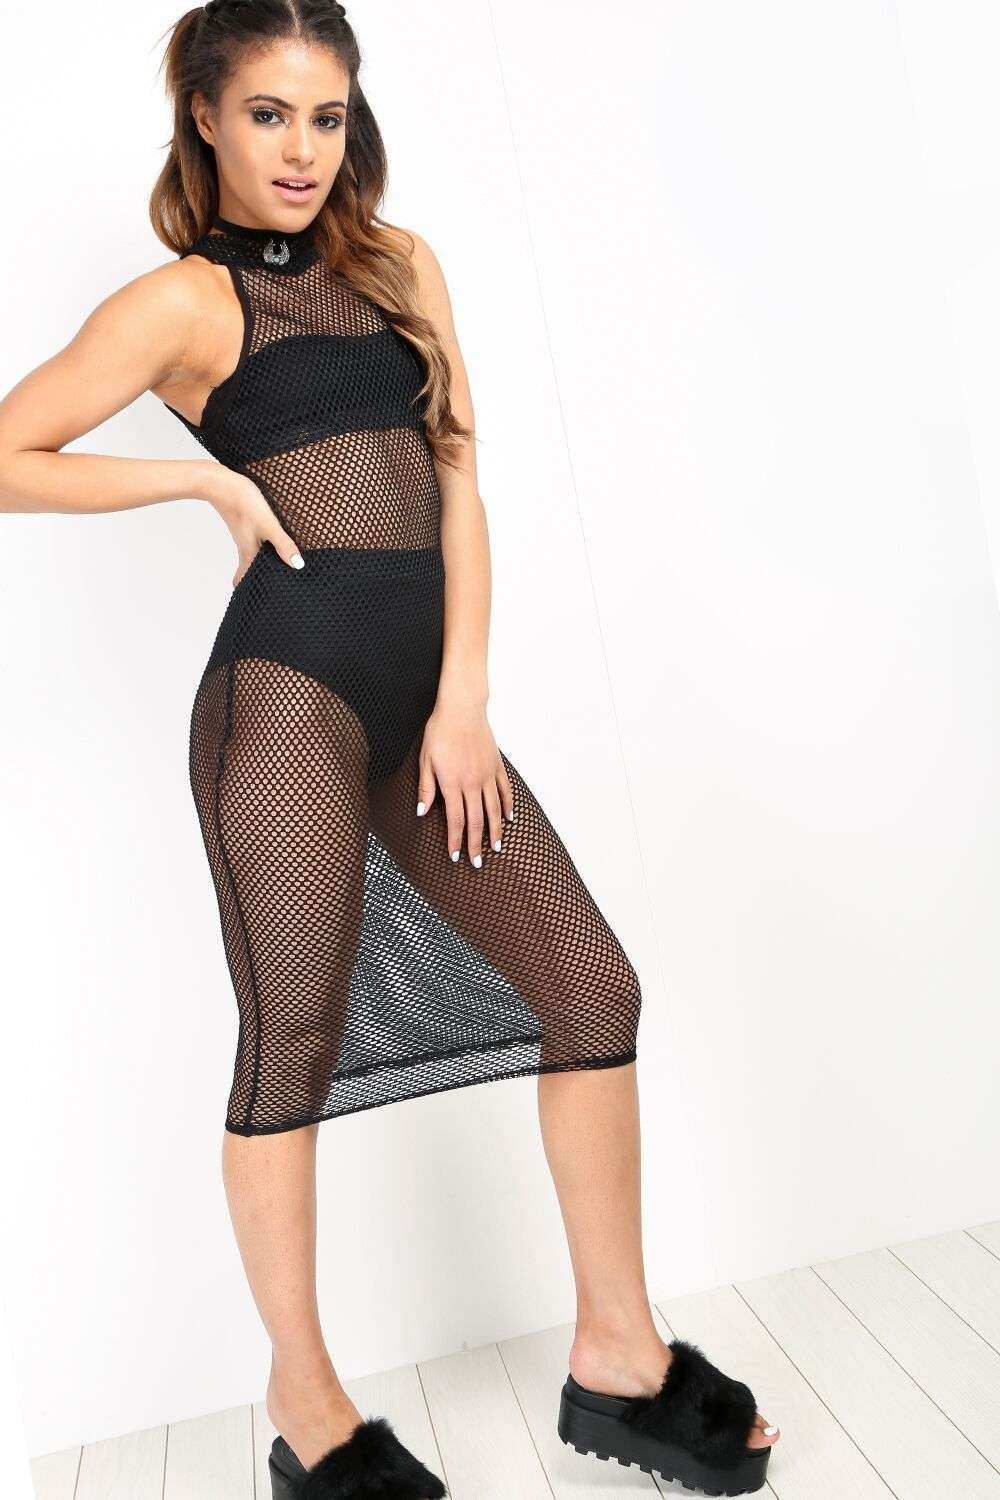 Leah Fish Net Bodycon Dress - bejealous-com